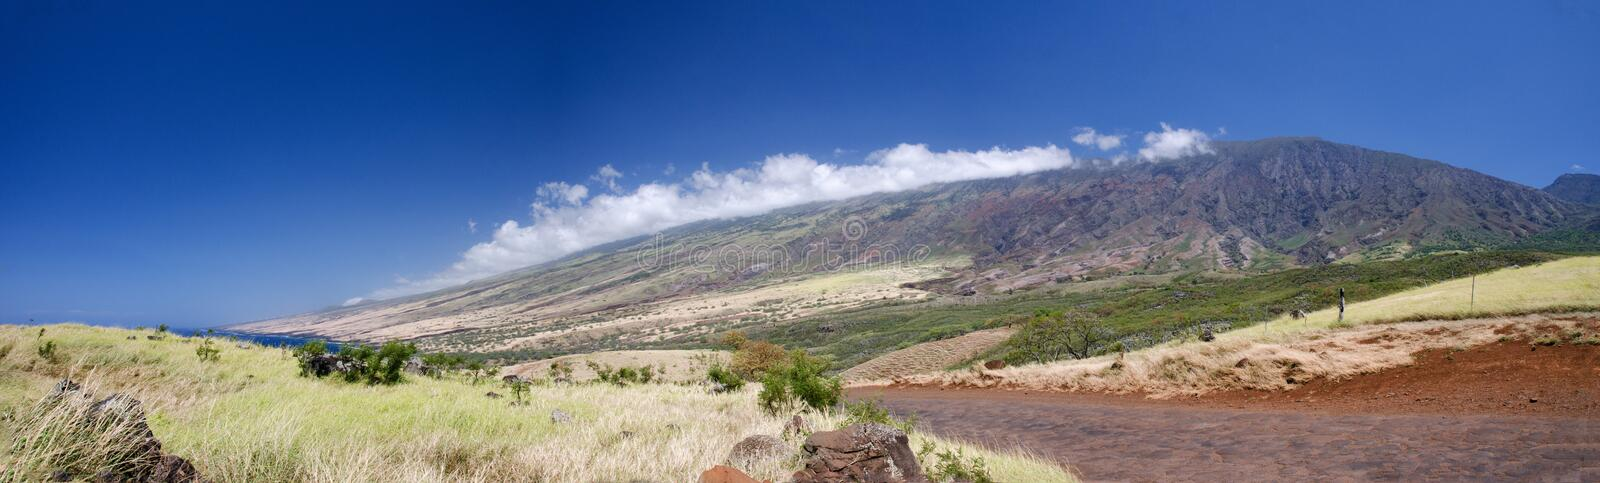 Scenic Maui Island S Coastline, Hawaii Stock Photo